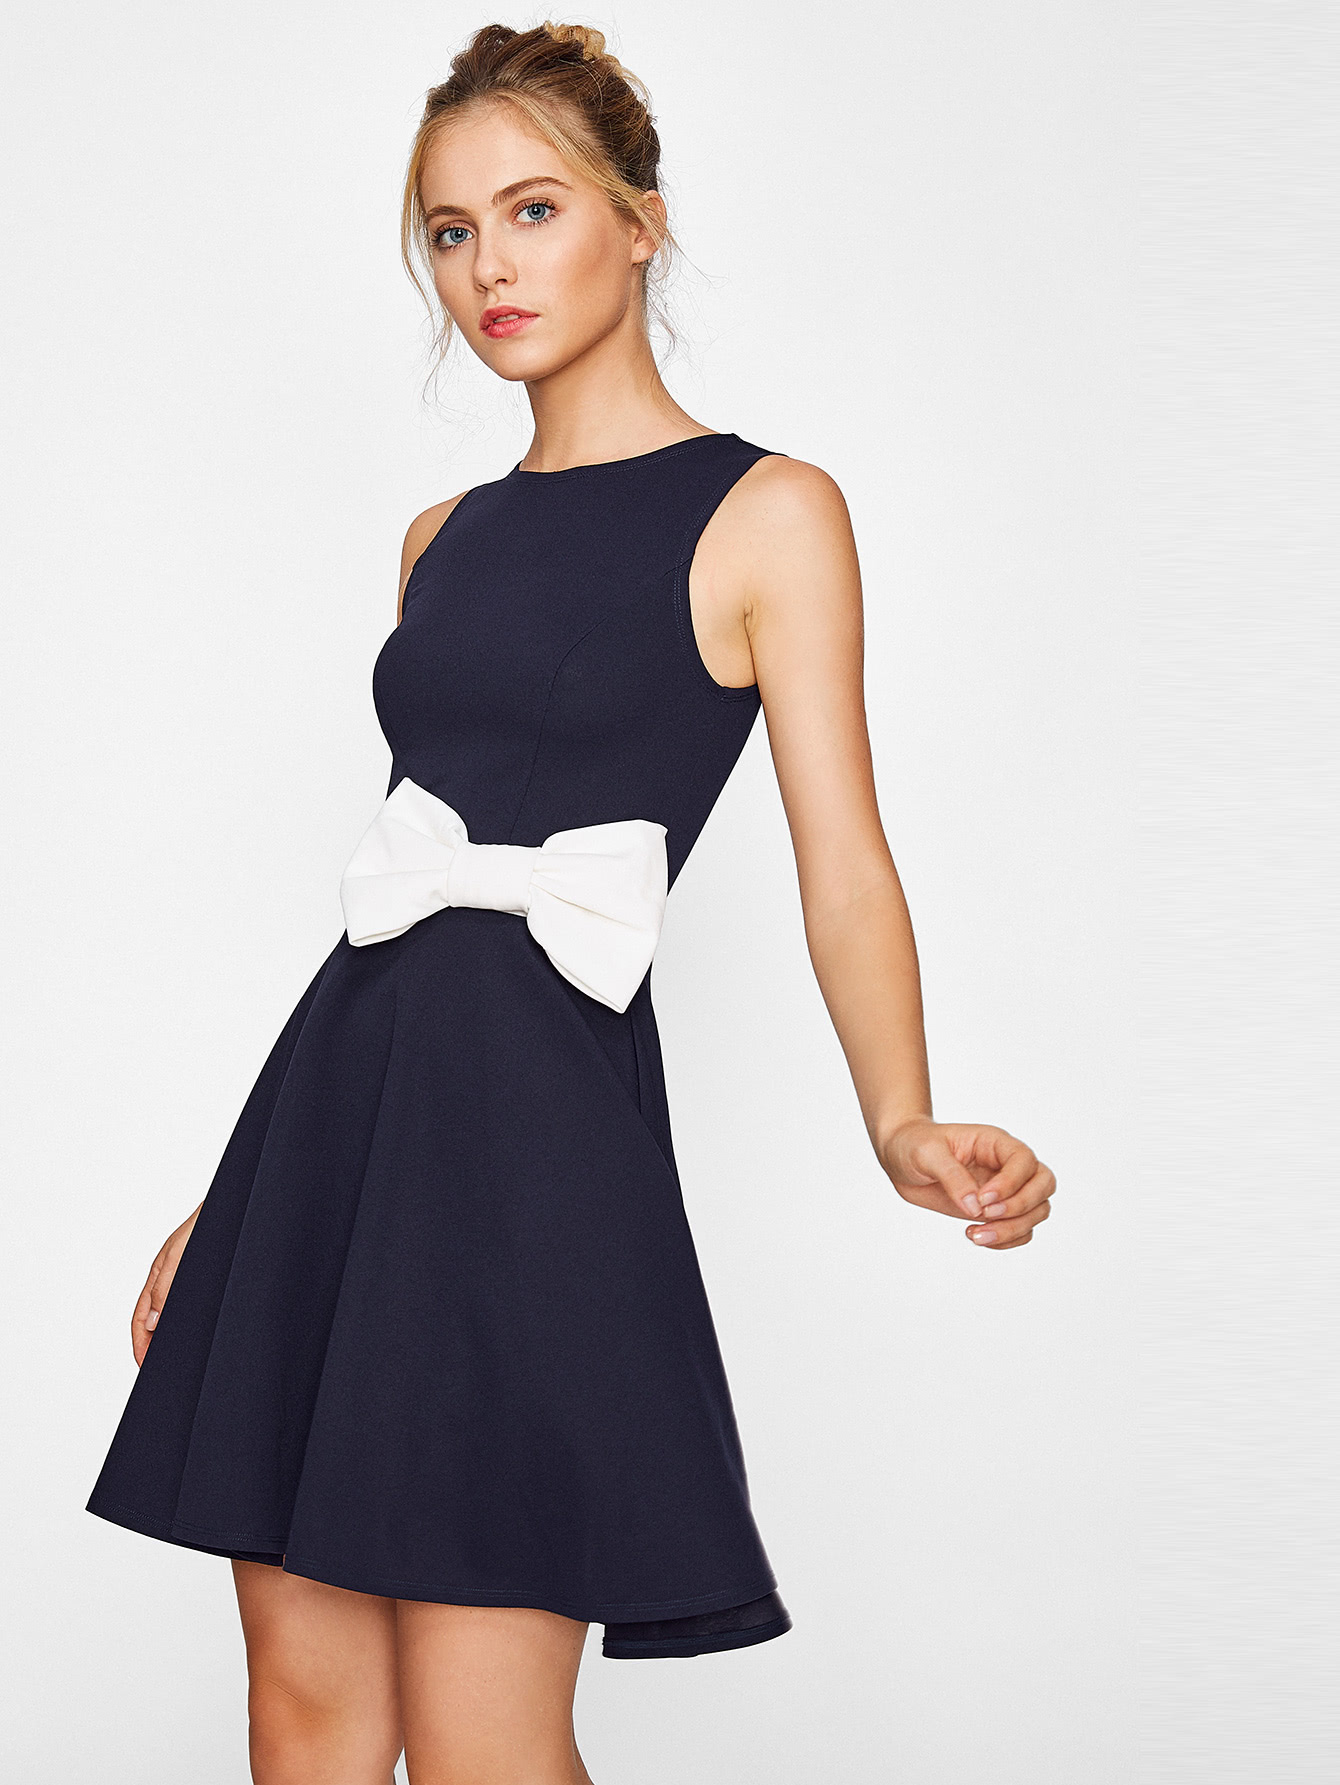 Contrast Bow Embellished Fit & Flare Dress contrast fit and flare embroidered mesh dress